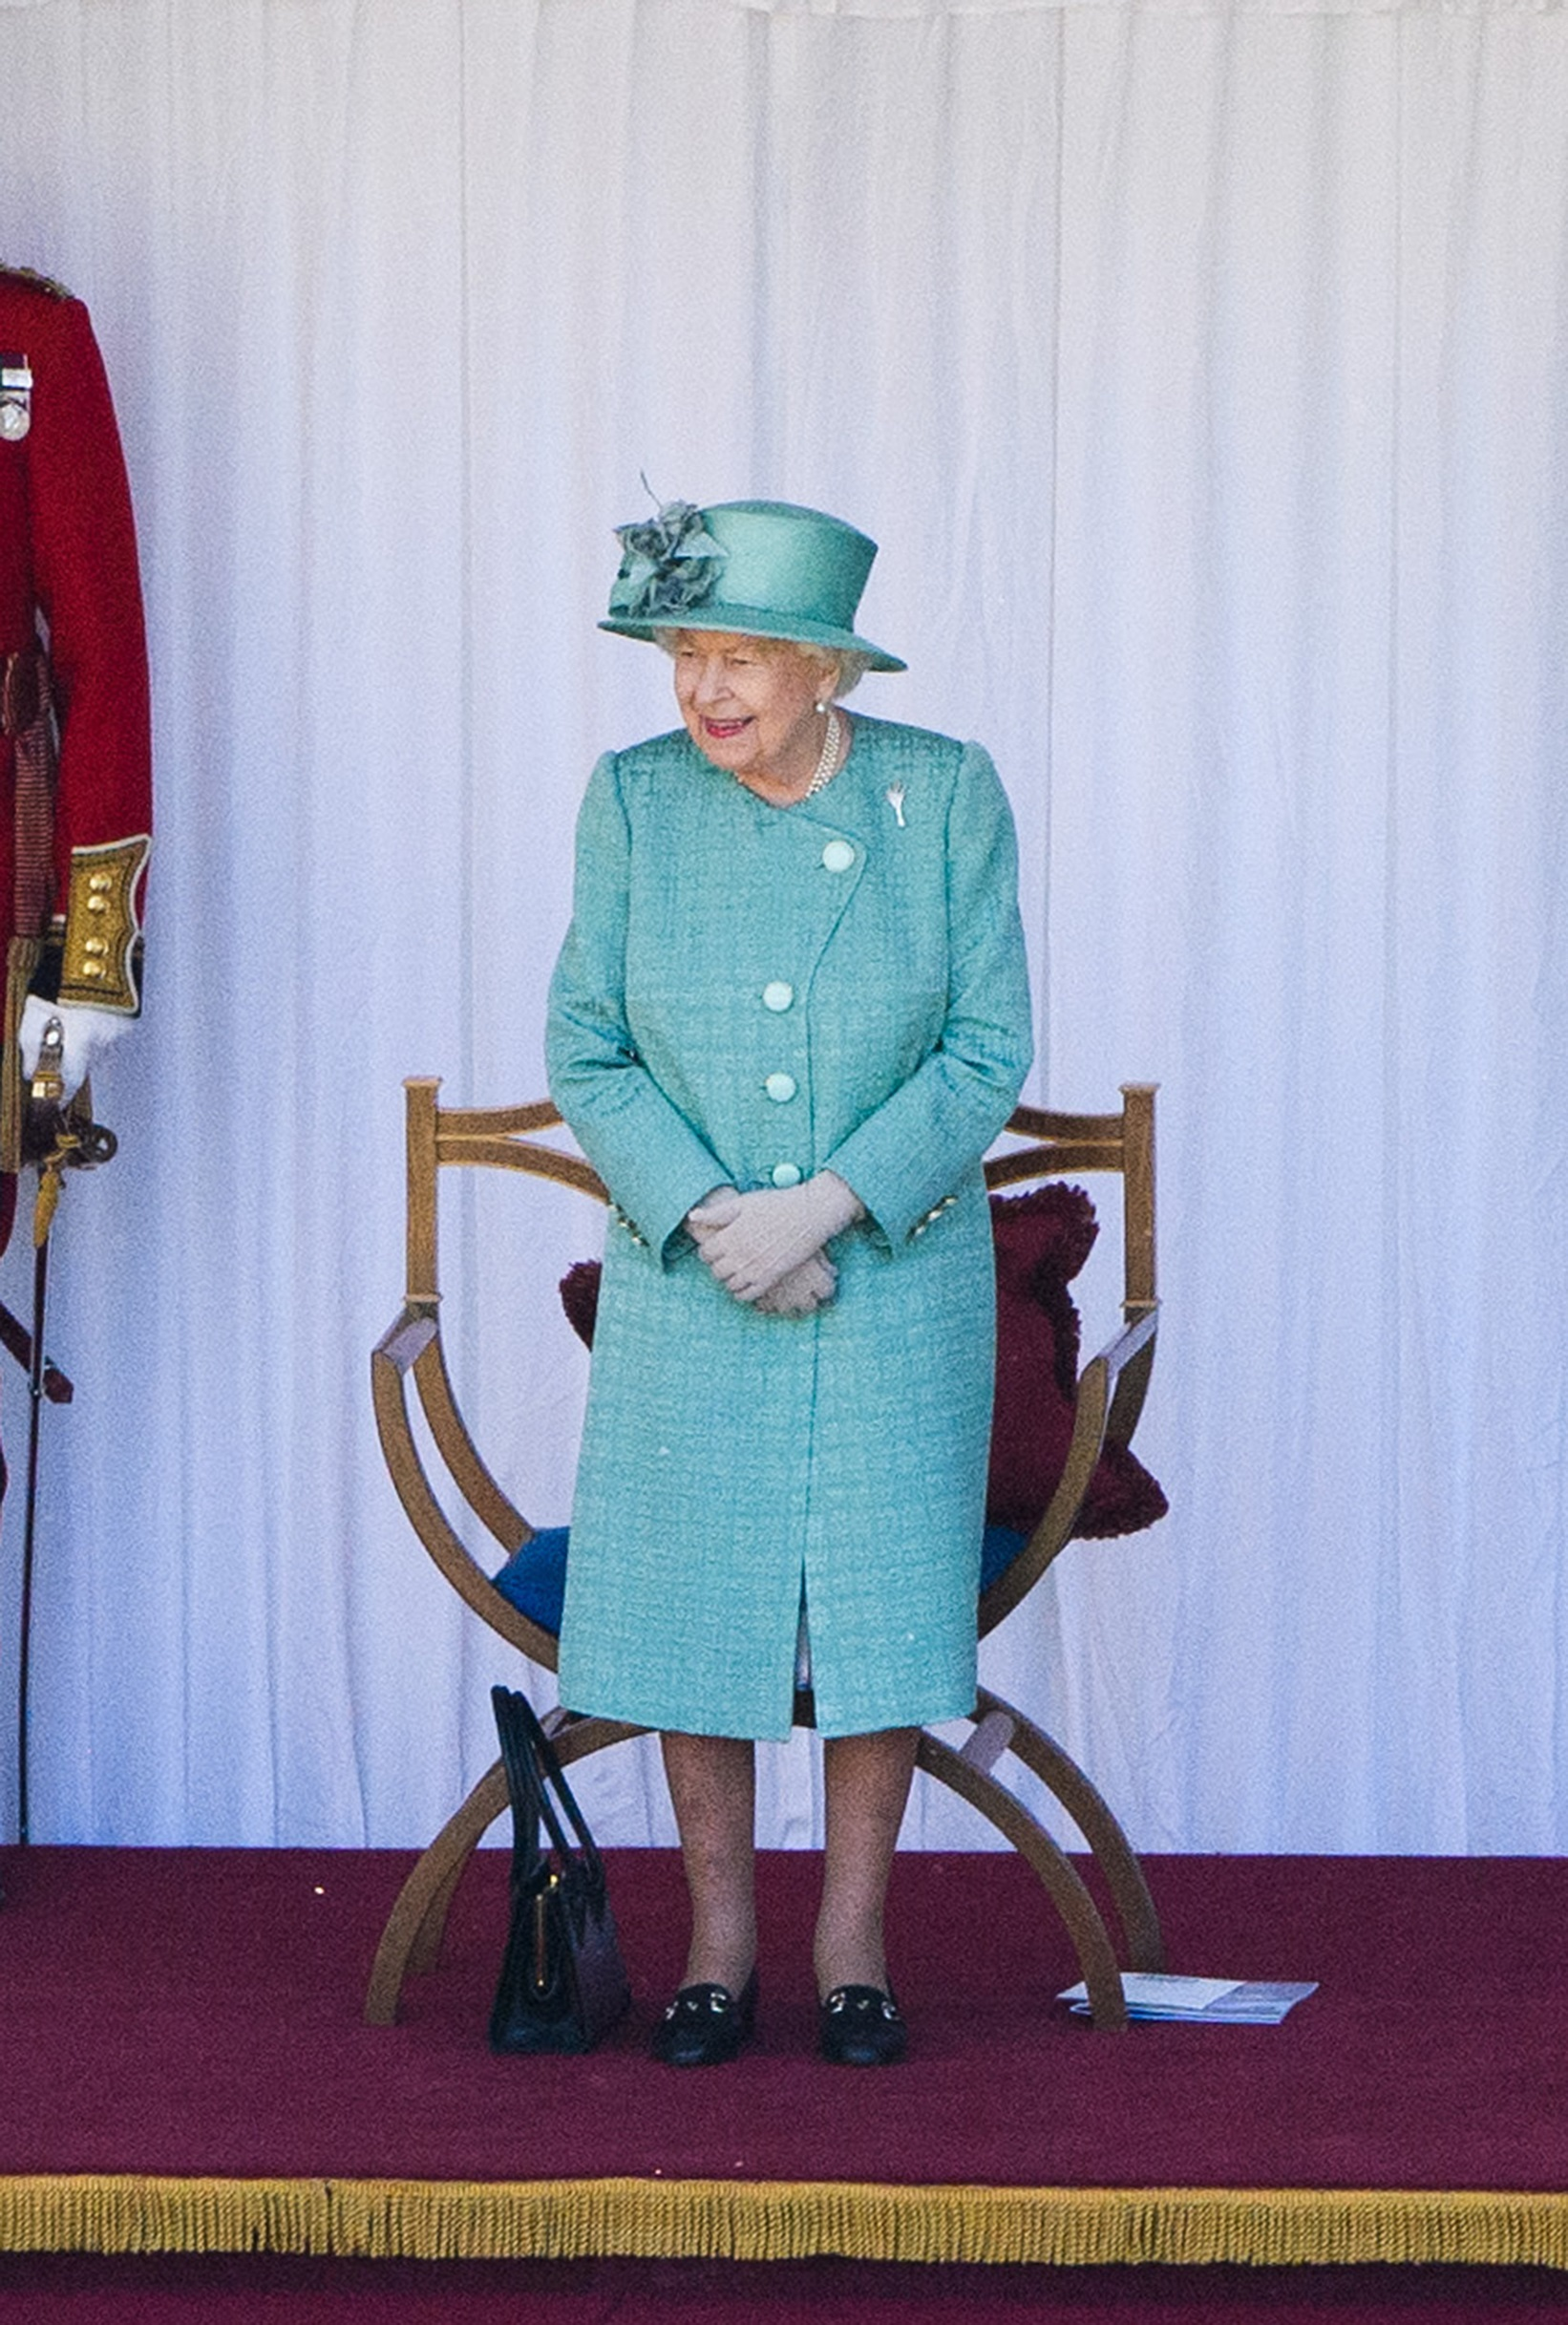 WINDSOR, ENGLAND - JUNE 13:  Queen Elizabeth II attends a ceremony to mark her official birthday at Windsor Castle on June 13, 2020 in Windsor, England. The Queen celebrates her 94th birthday this year, in line with Government advice, it was agreed that The Queen's Birthday Parade, also known as Trooping the Colour, would not go ahead in its traditional form. (Photo by Joanne Davidson - Pool/Getty Images)